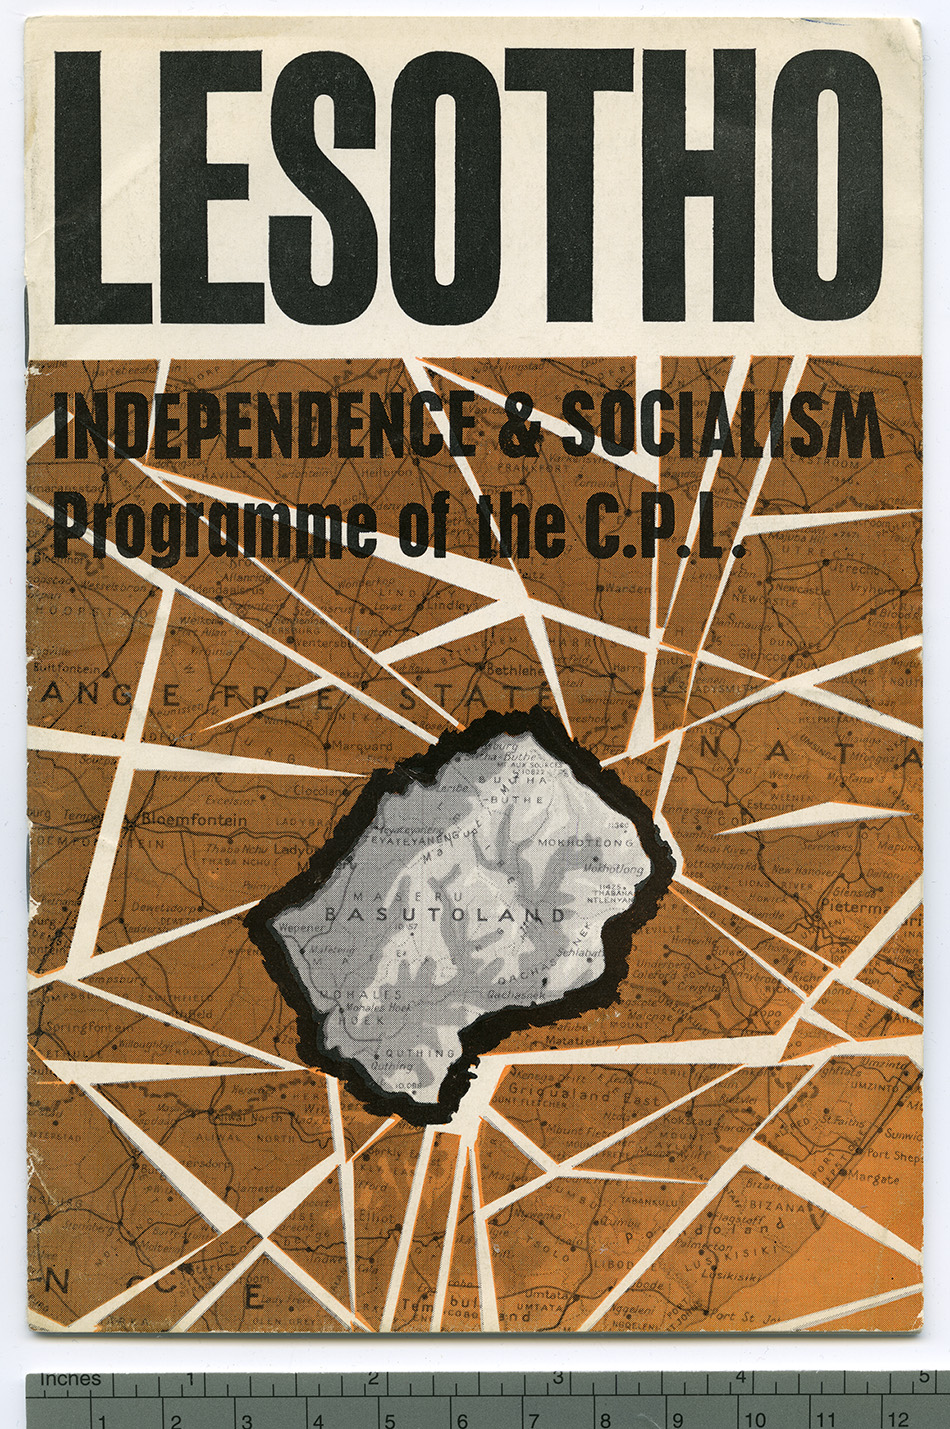 Programme & Constitution of the Communist Party of Lesotho